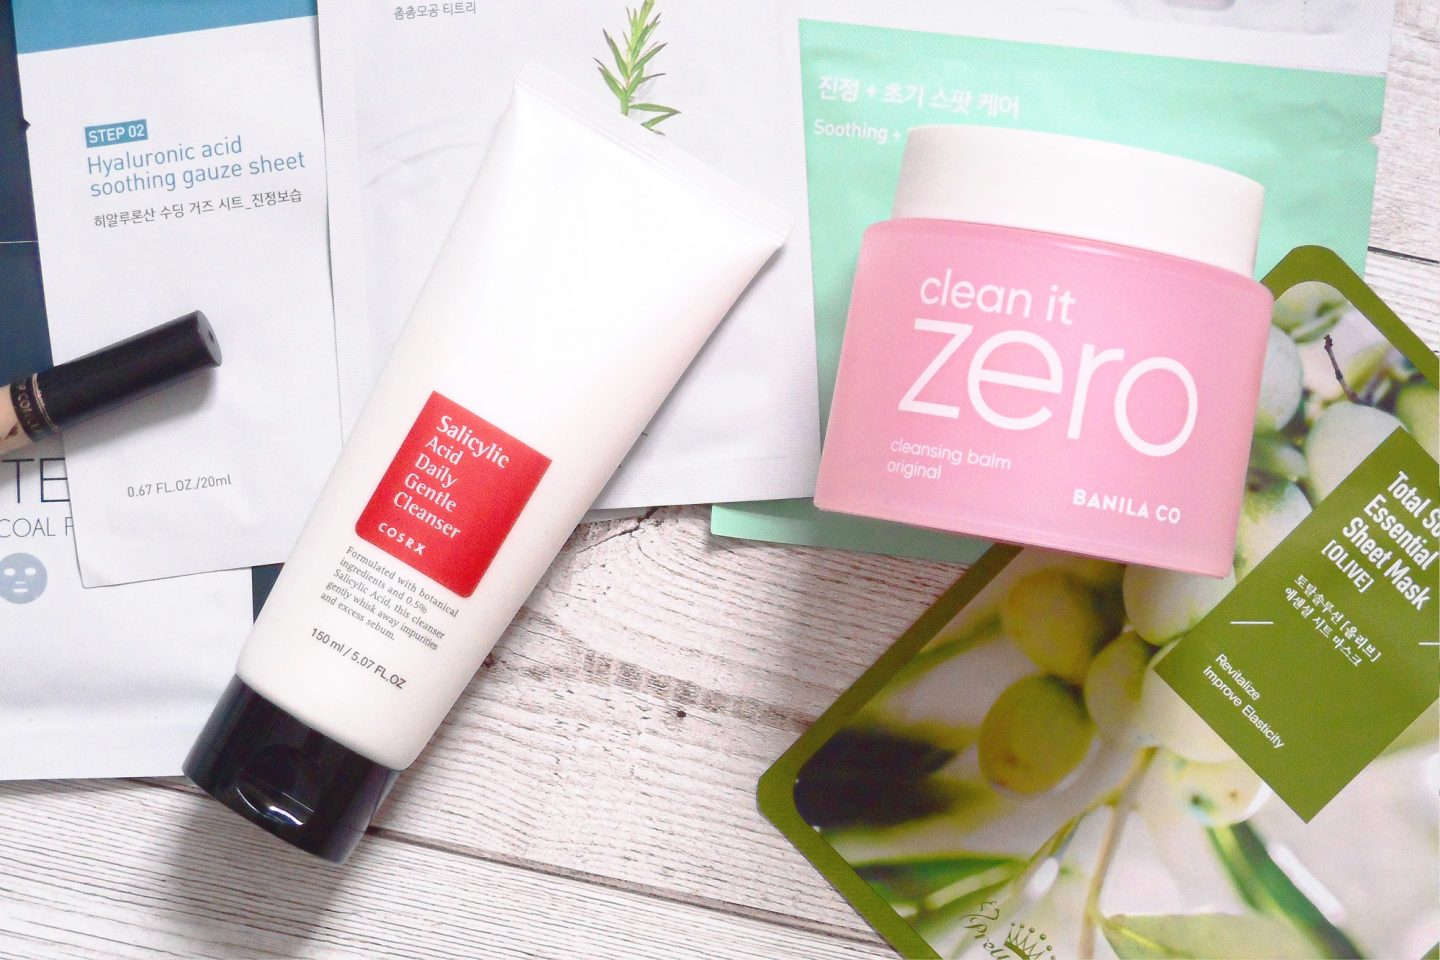 korean beauty makeup skincare products cosrx salicylic acid daily gentle cleanser banila co clean it zero cleansing balm